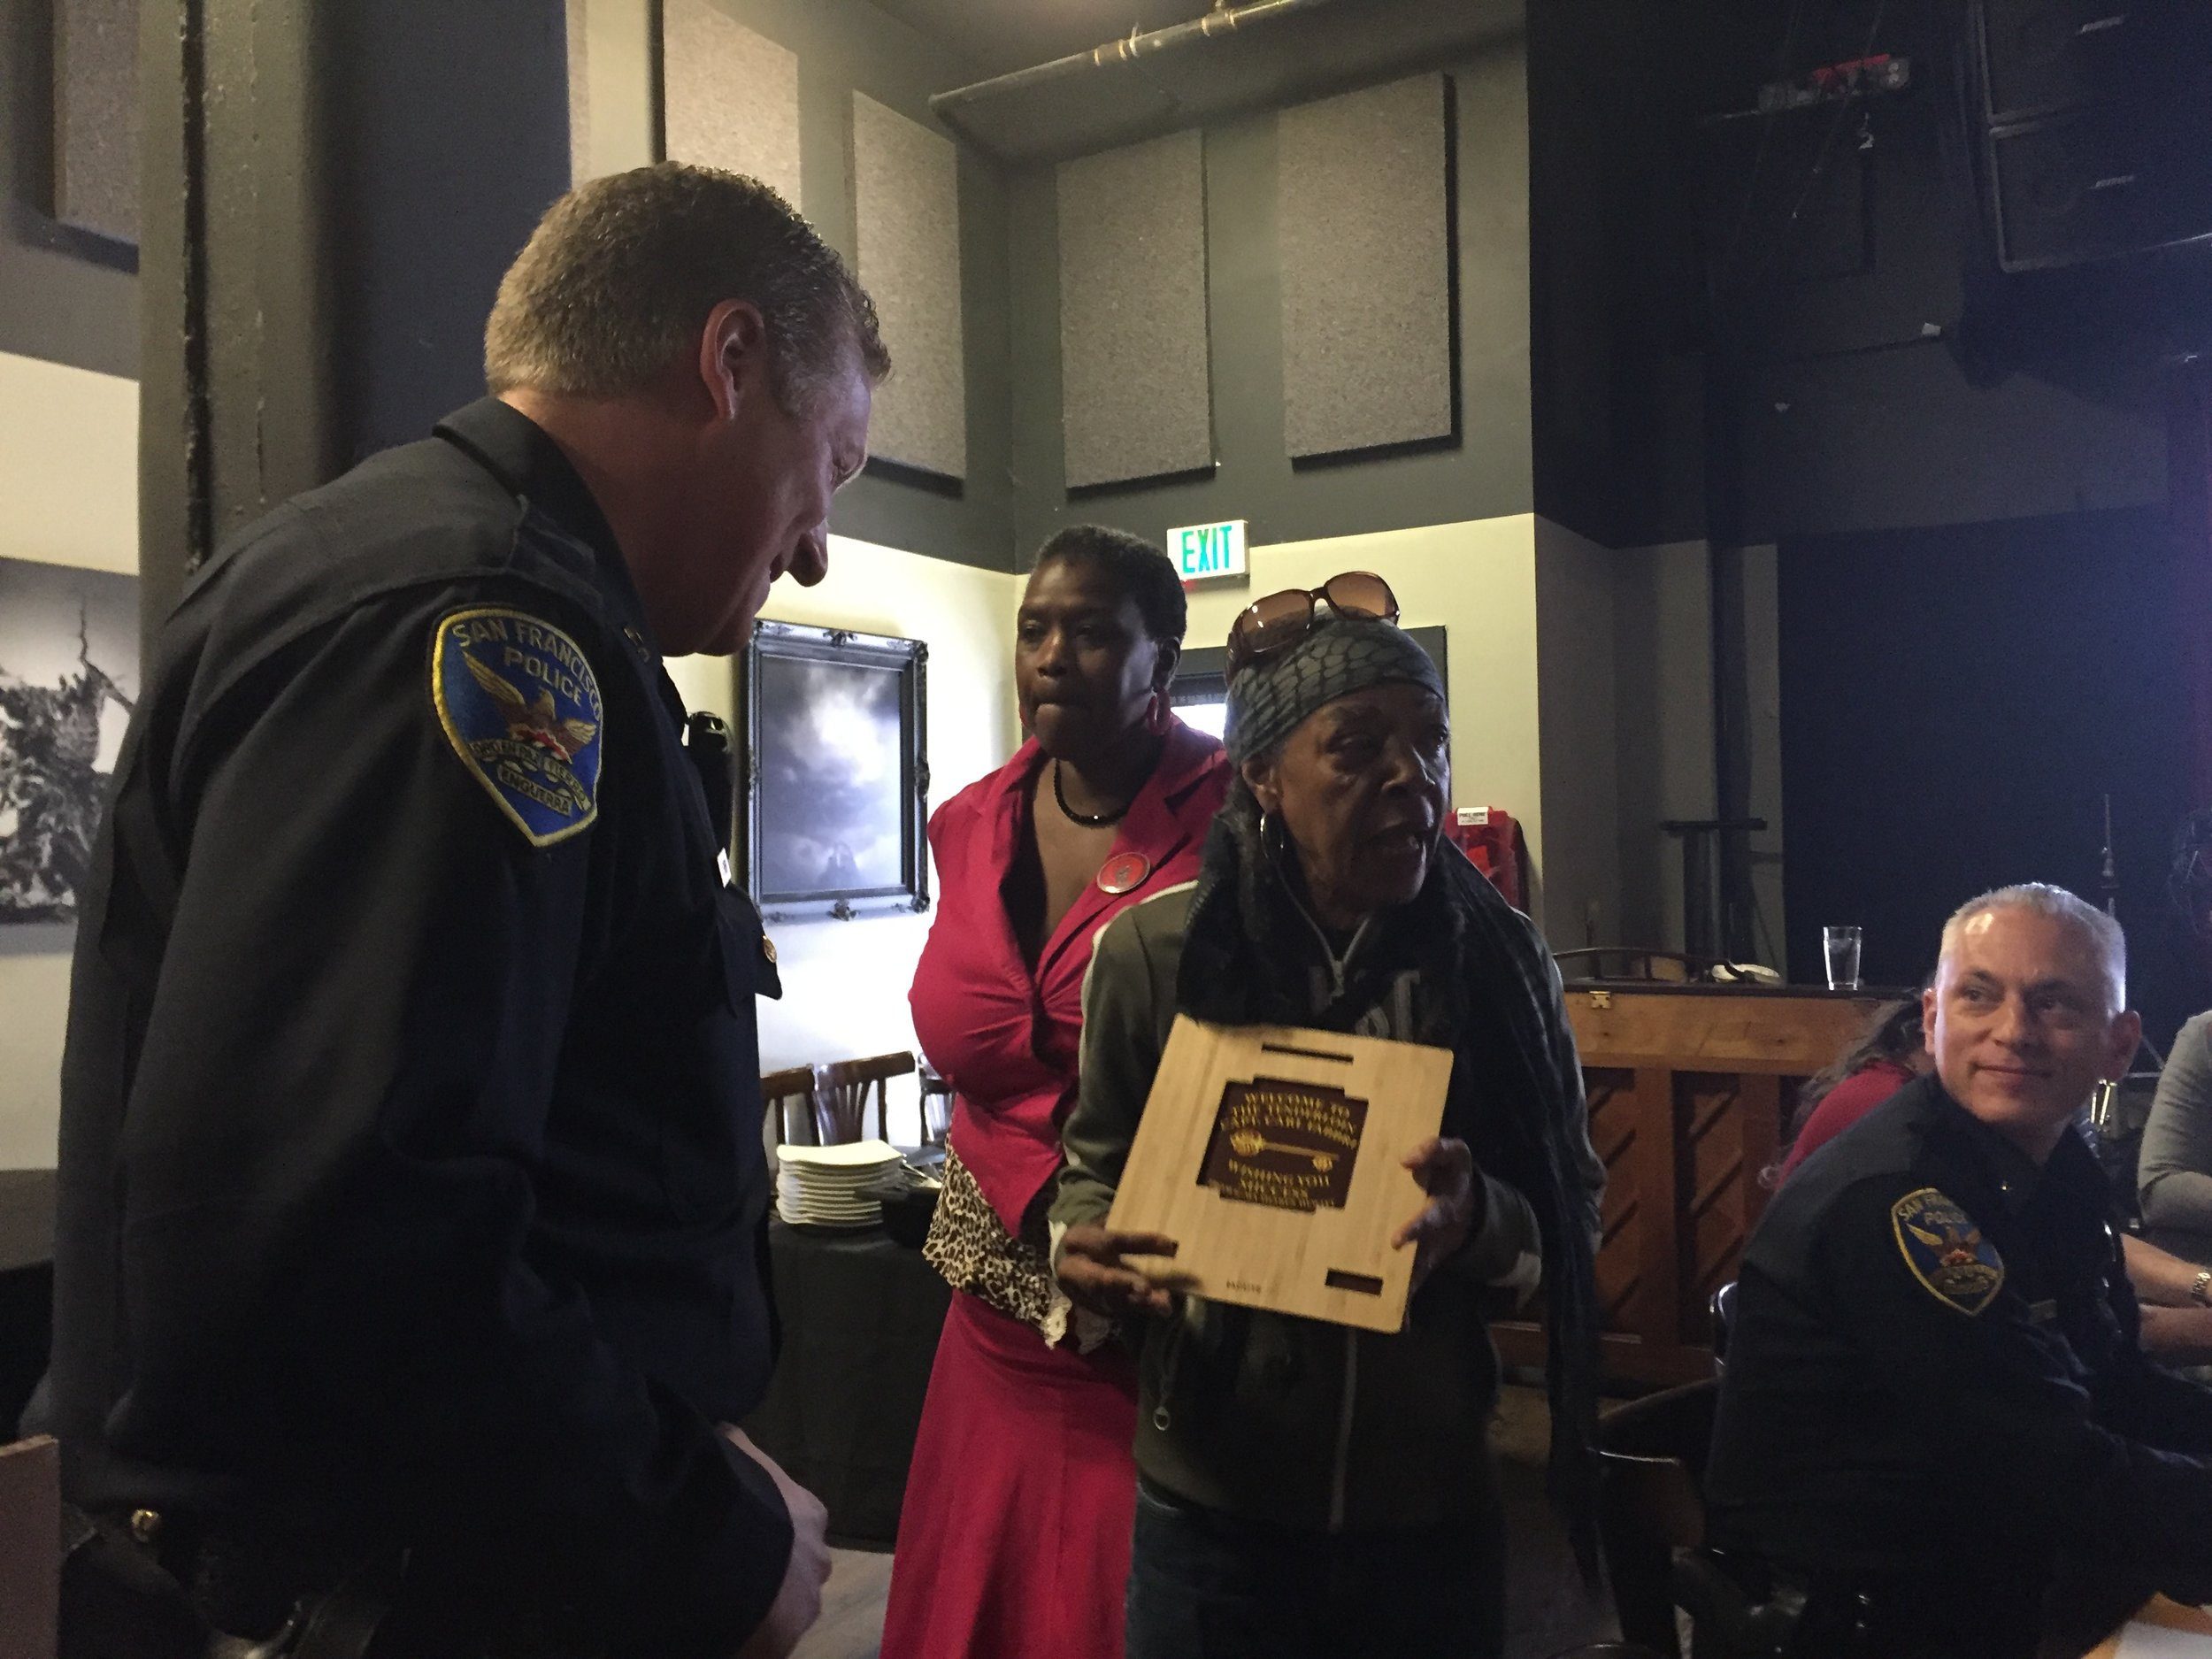 At a communtiy she coorganized with PianoFight,G-Ma presented the newly appointed TL Captain Carl Fabbri with a homemade, up cycled gift which she compared to the beauty and resiliency of the Tenderloin community. Also photographed, two of G-Ma's close friends, Debra, and Commander David Lazar.